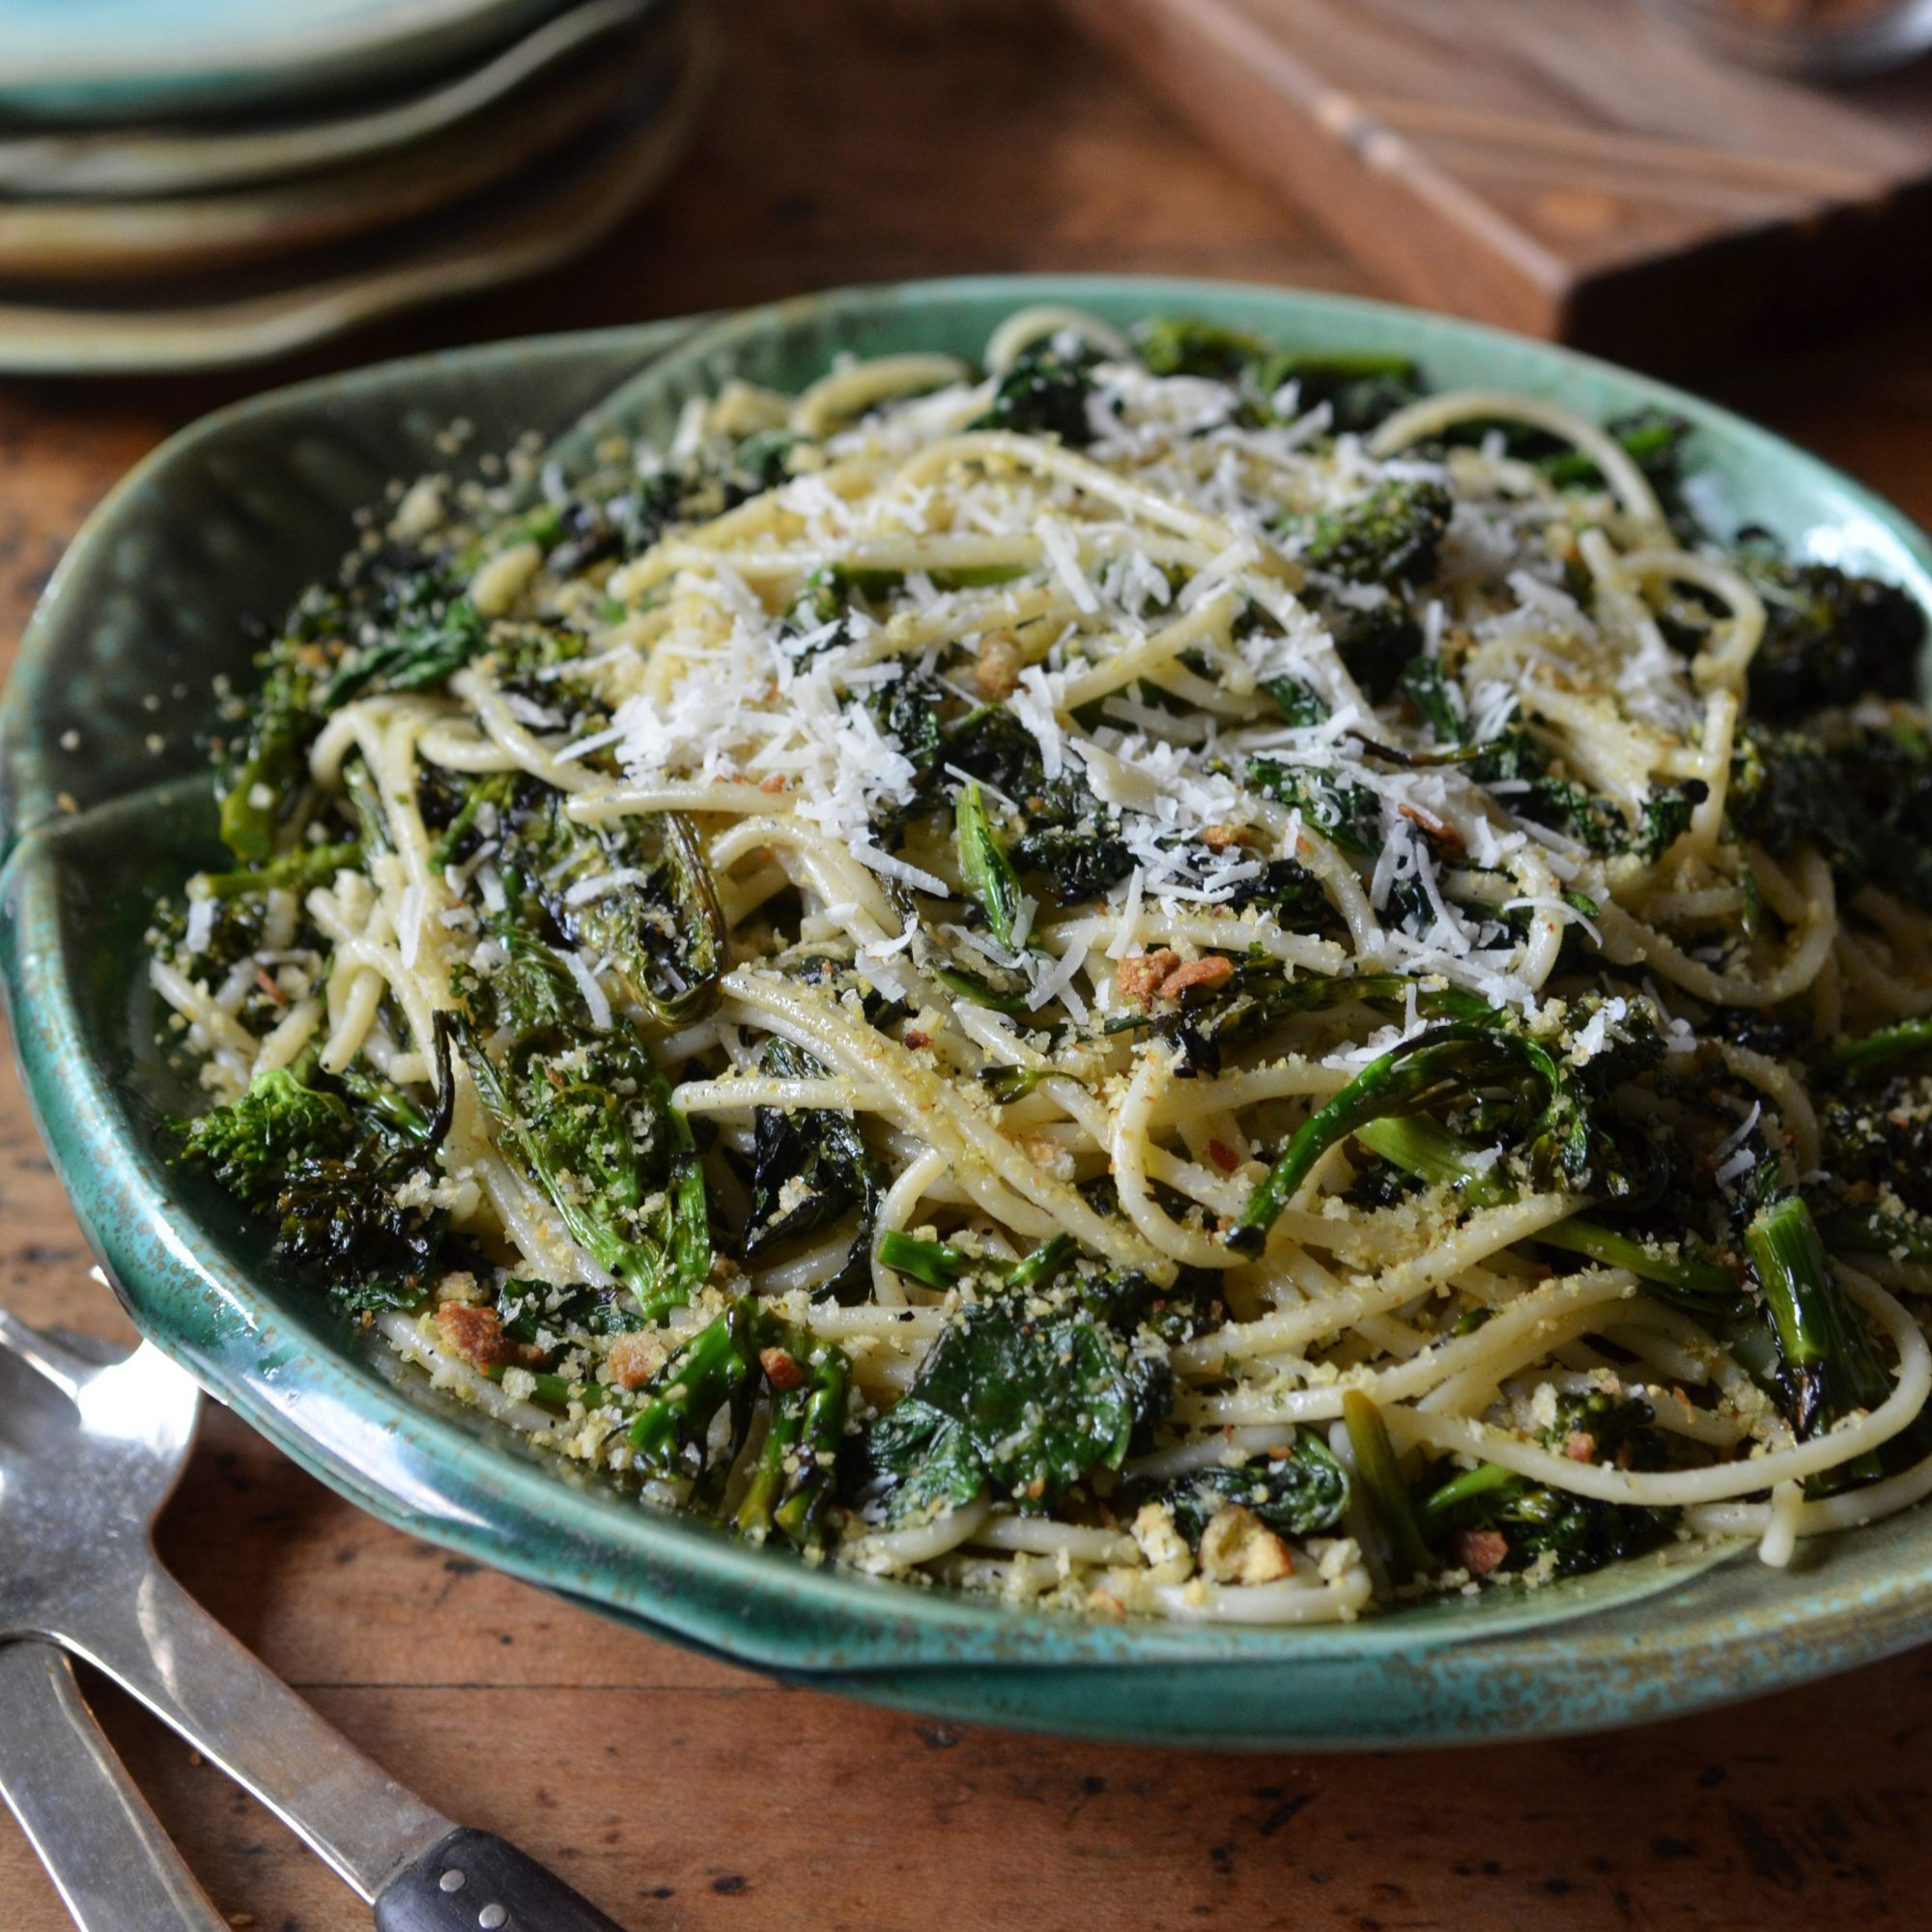 Charred Broccoli Rabe with Chitarra and Lemony Bread Crumbs